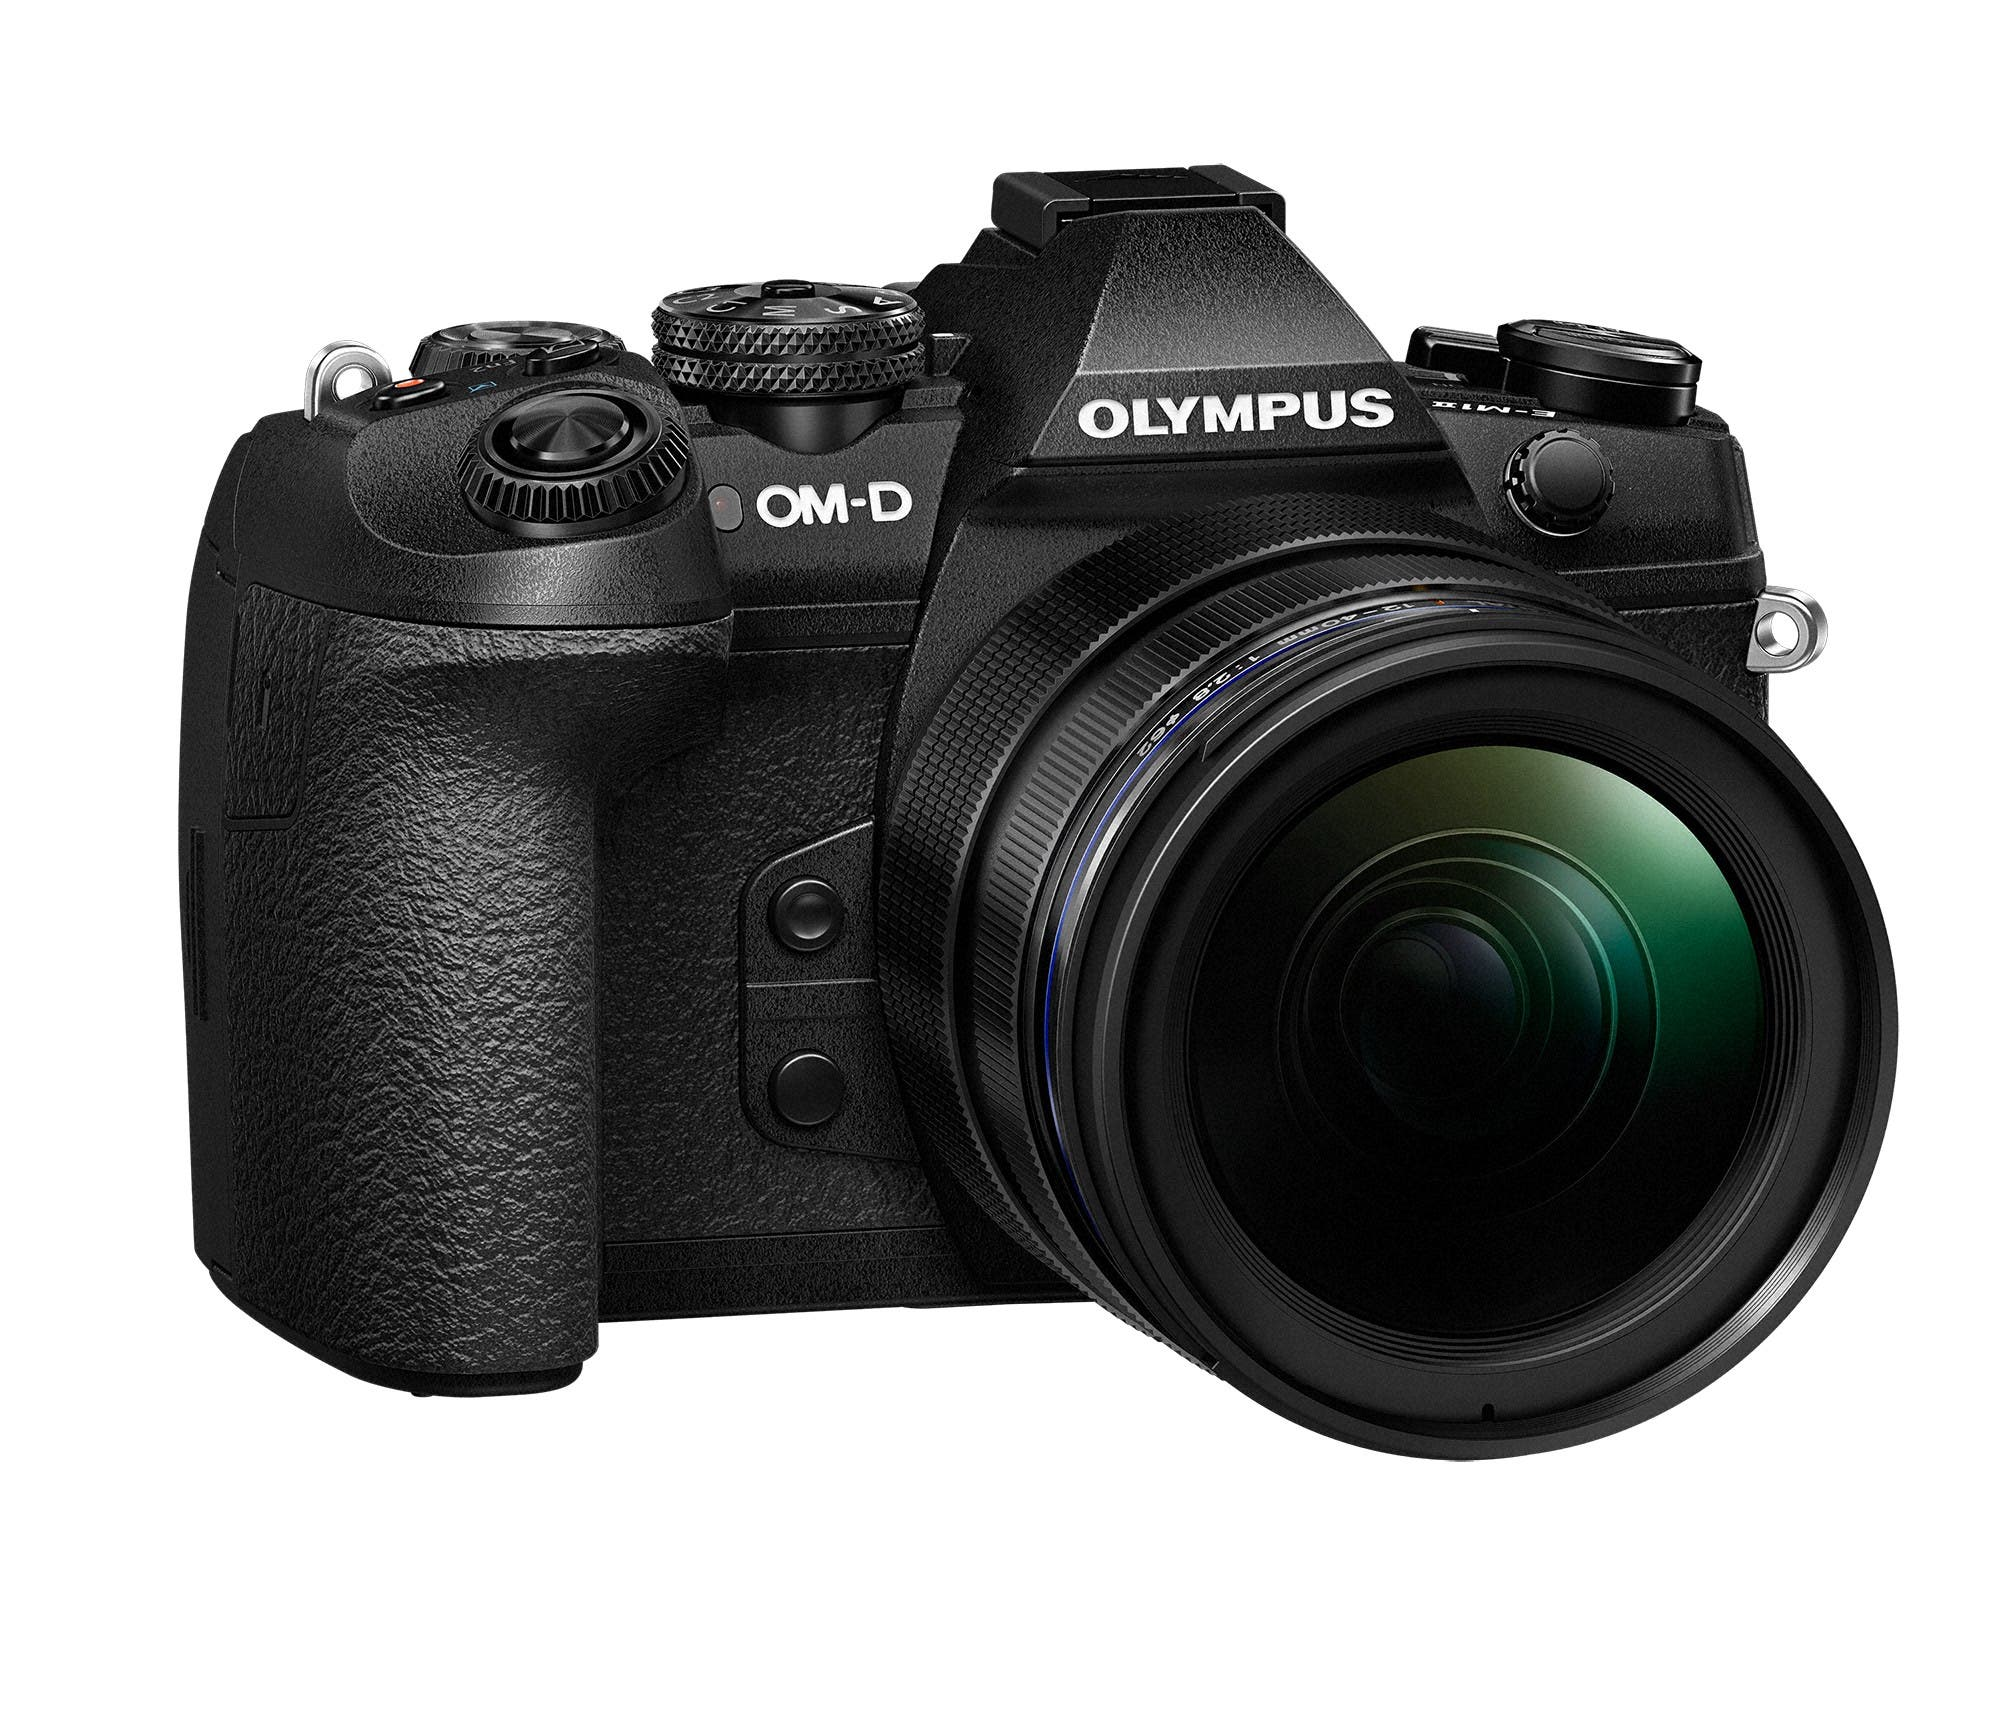 Olympus OM-D E-M1 II Can Shoot 18 FPS RAW with AF